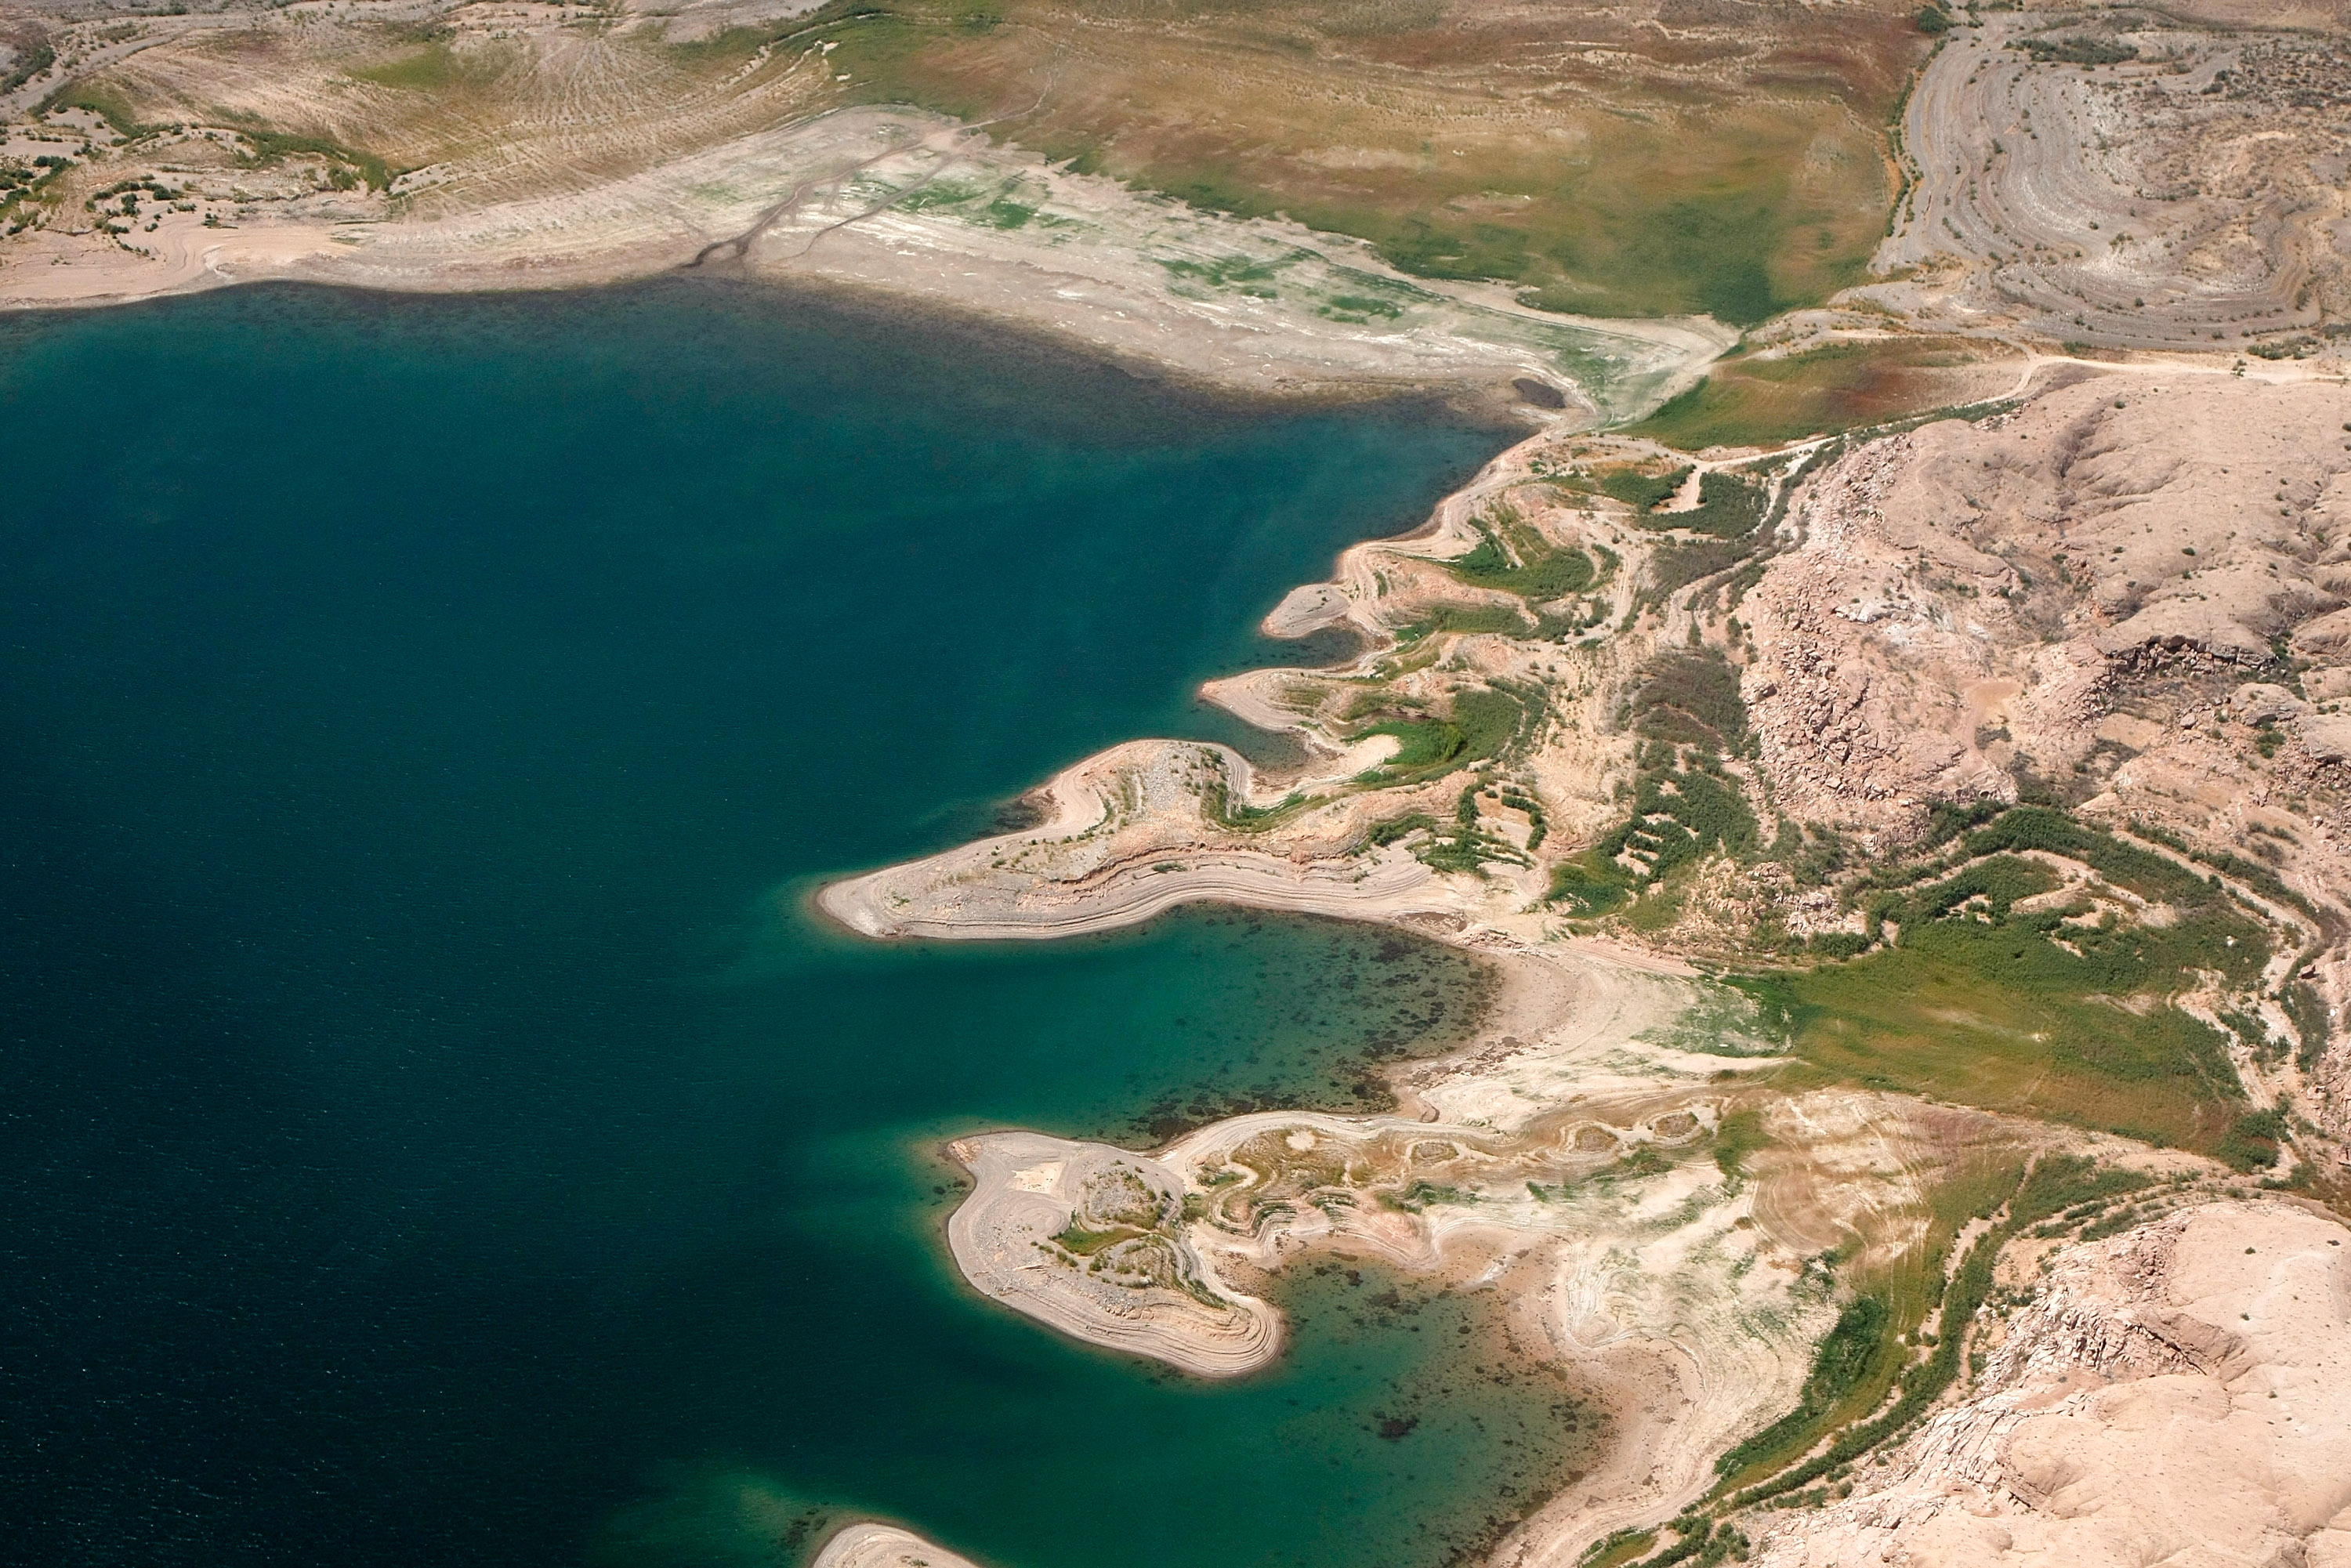 Aerials Of Lake Mead National Recreation Area